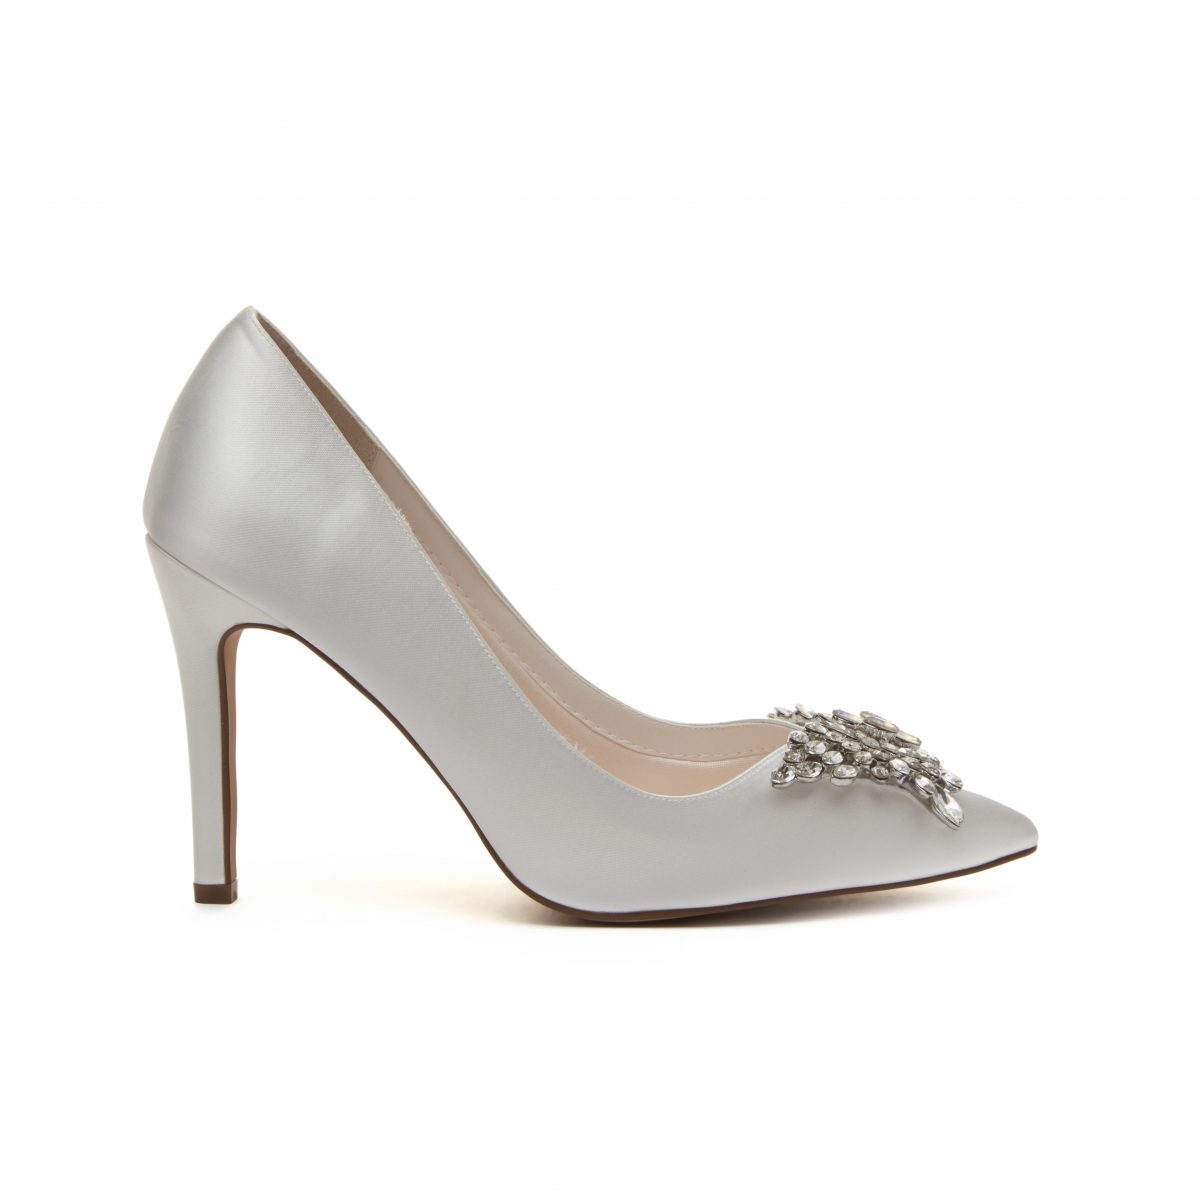 Rainbow Club Nelly - Ivory Satin Court Shoe 2